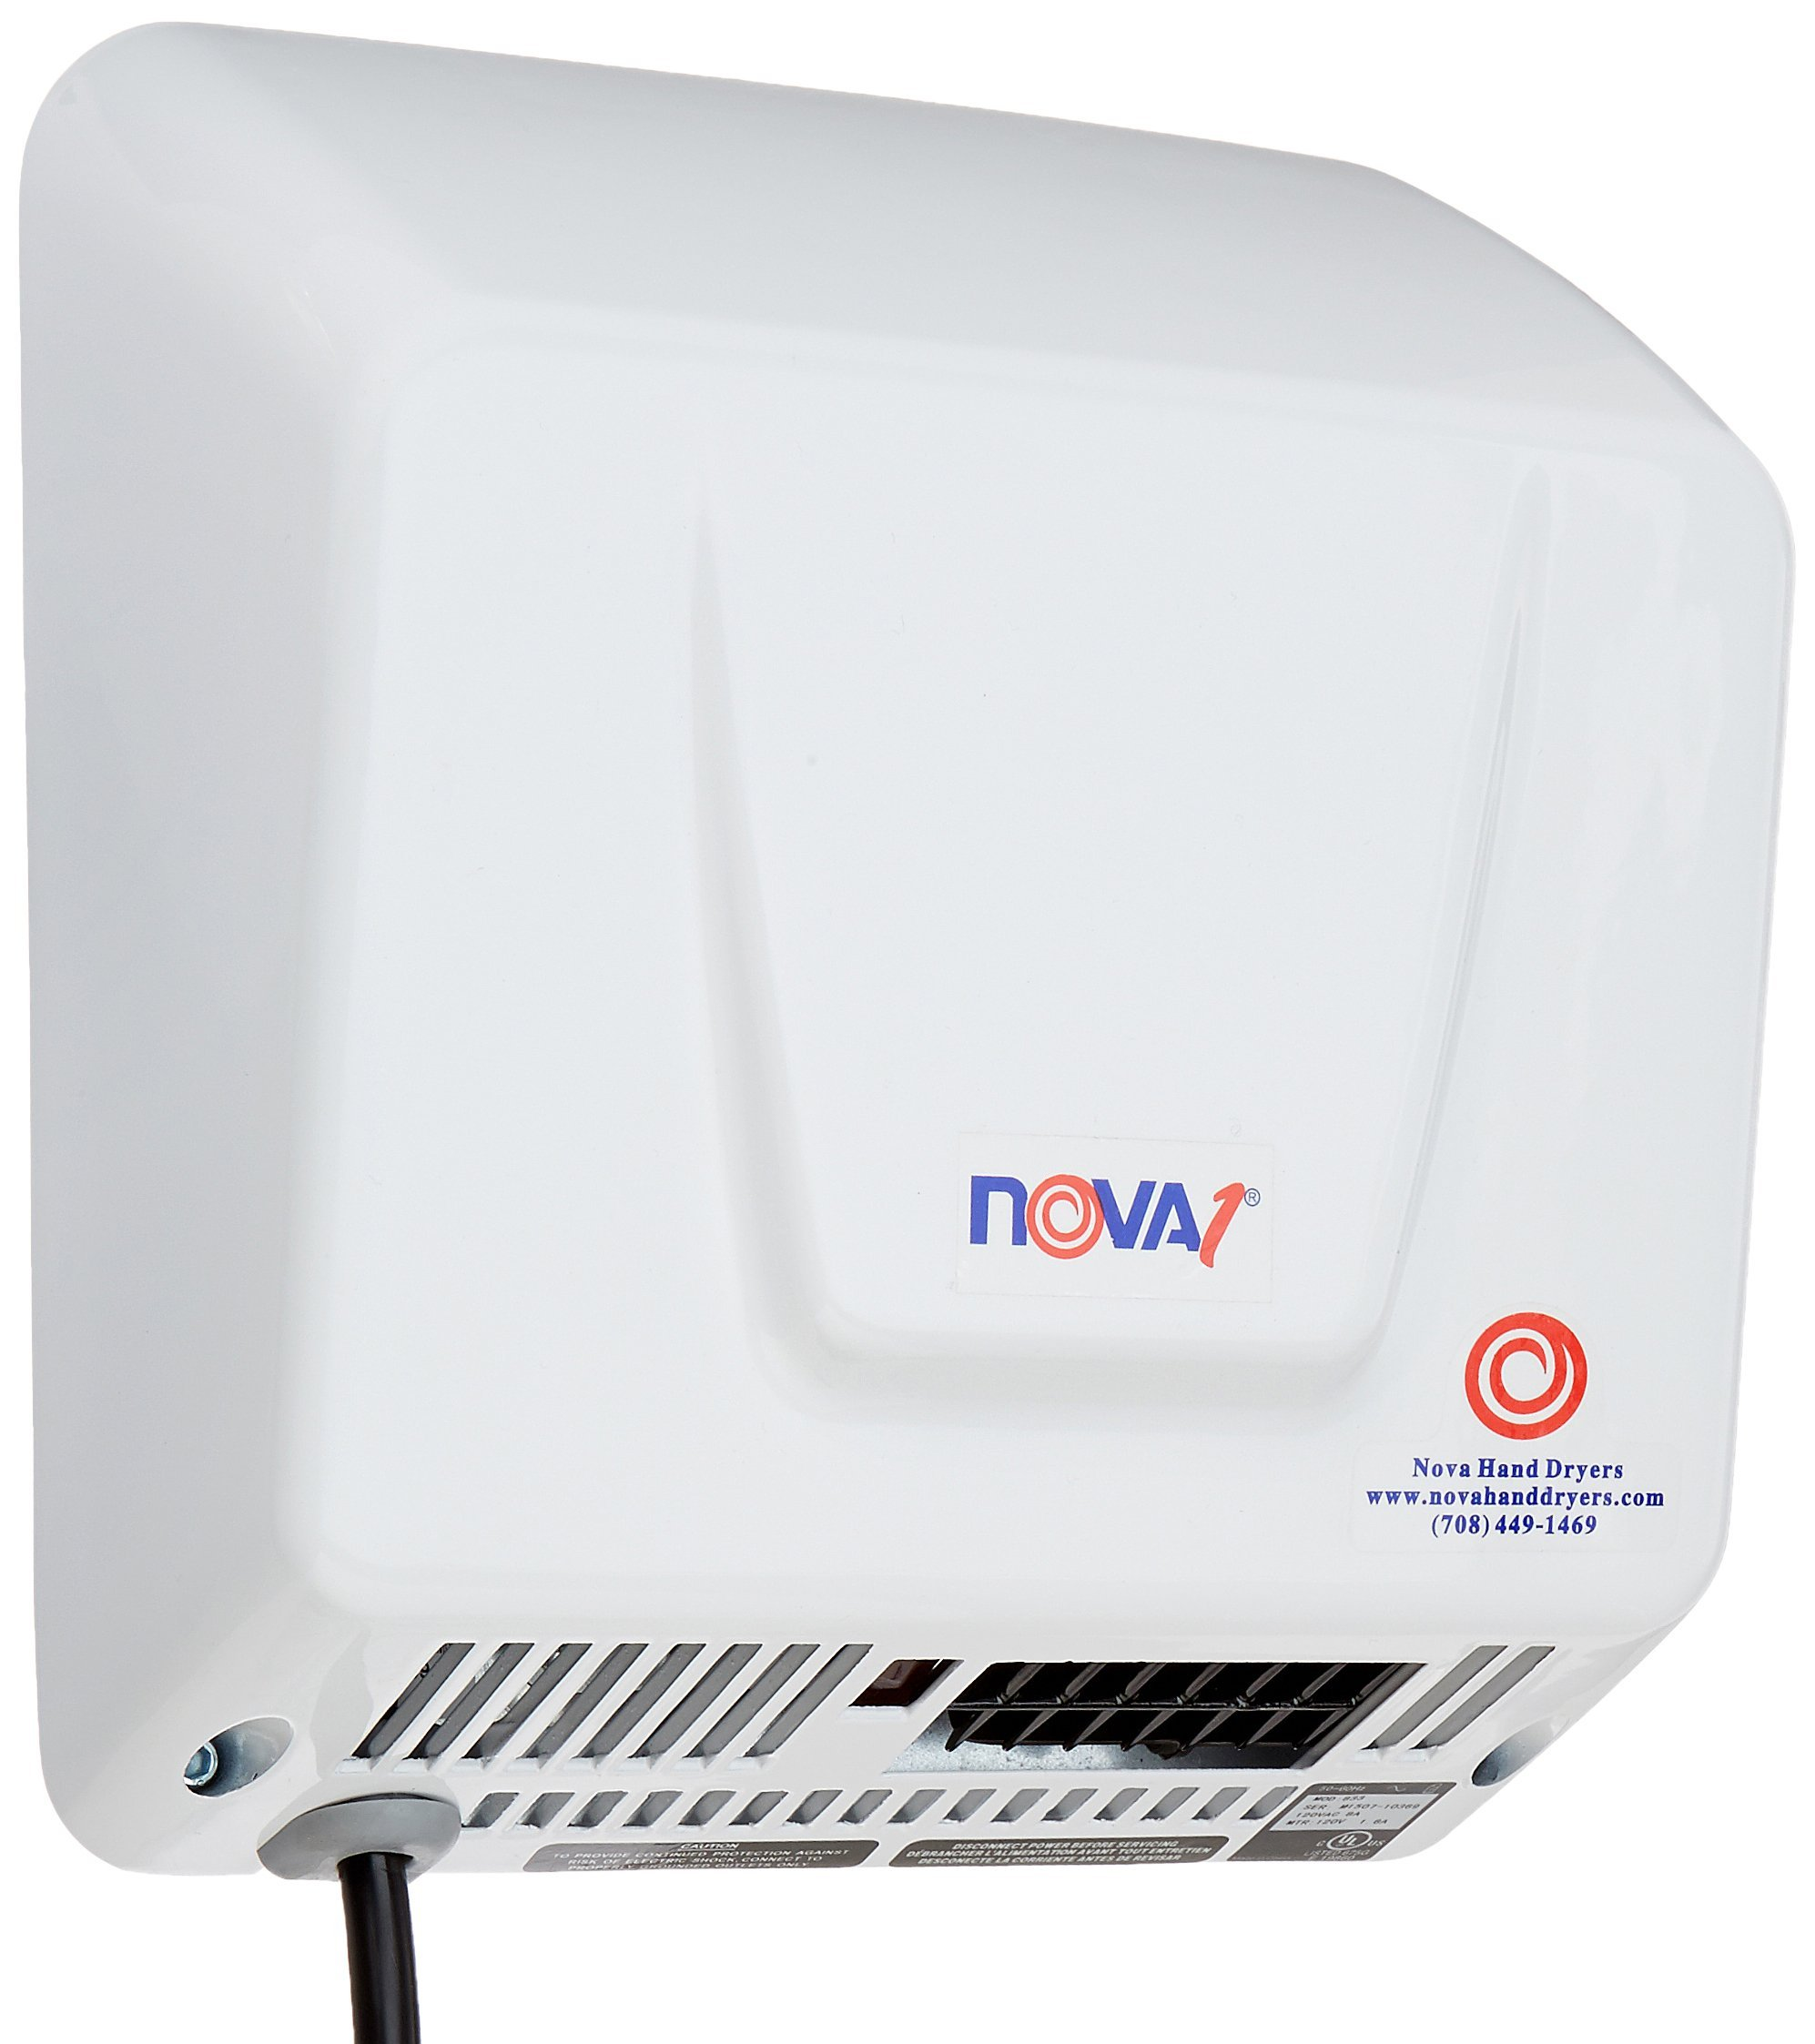 World Dryer 0833 NOVA-1 Plug-In Economical Surface Mounted Plug-In Quick Install Automatic Hand Dryer, Standard 110-120V Wall Outlet Aluminum Cover, White by Nova